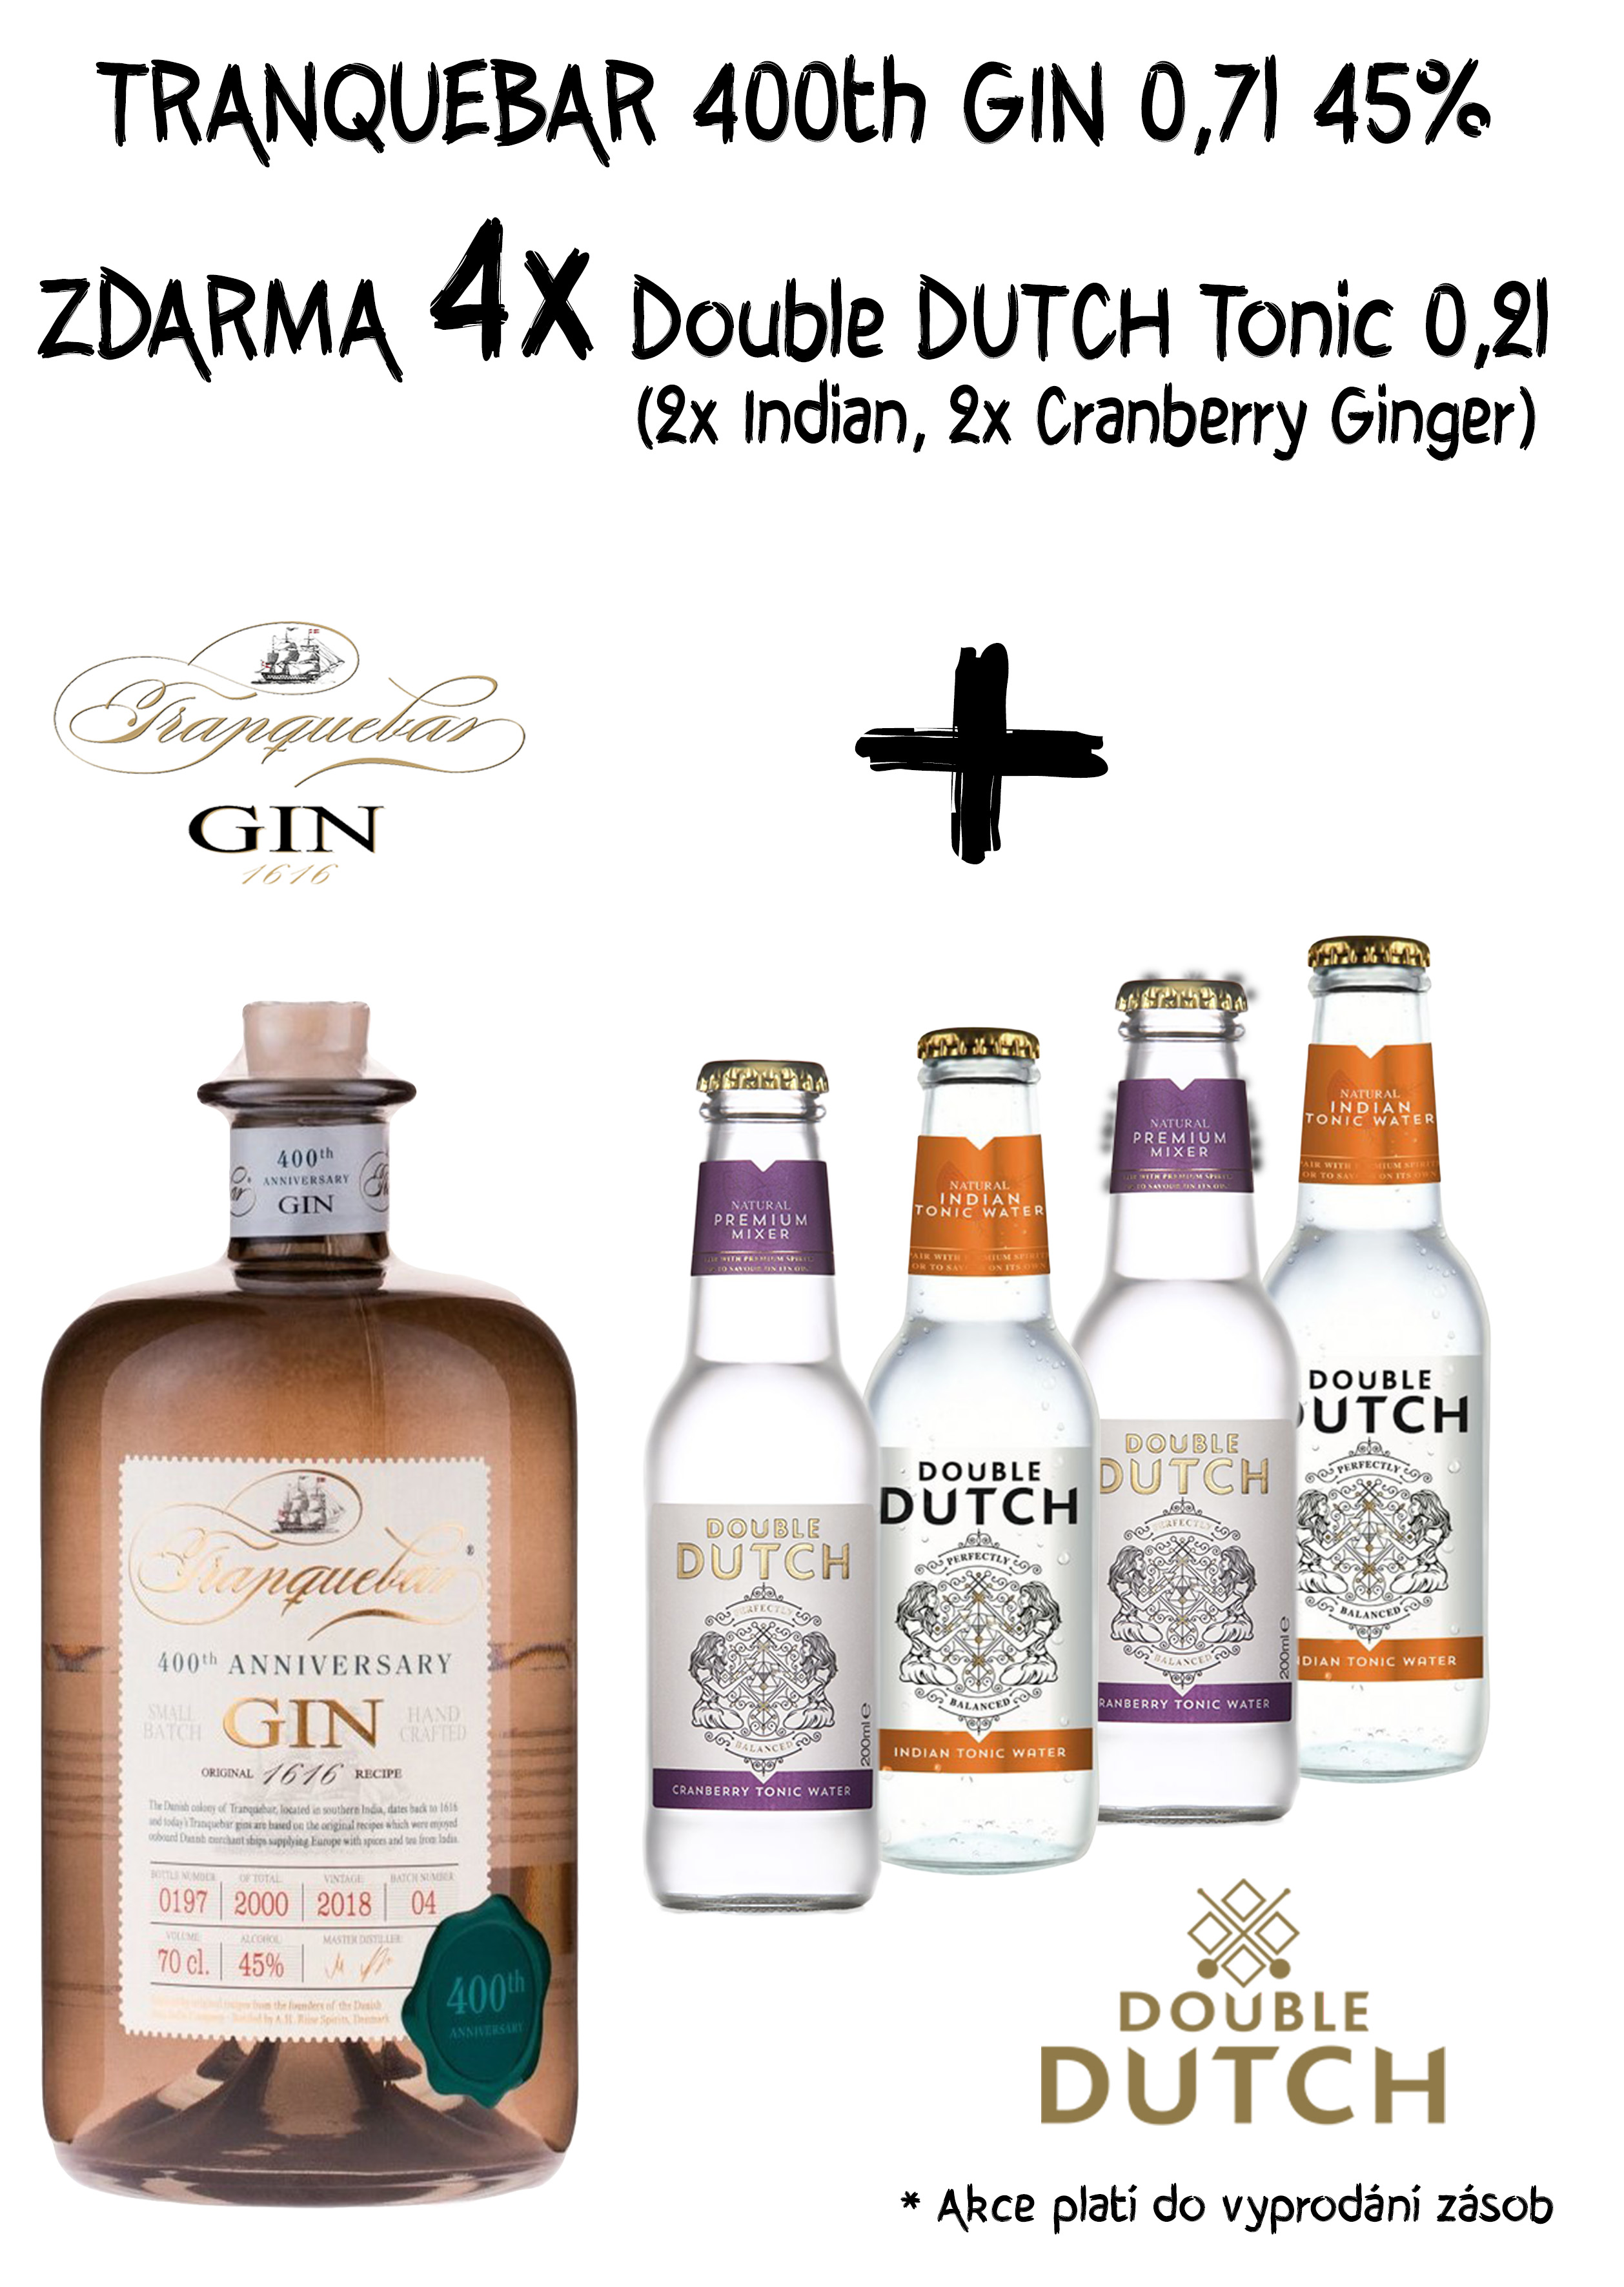 Tranquebar-gin-double-dutch-zdarma